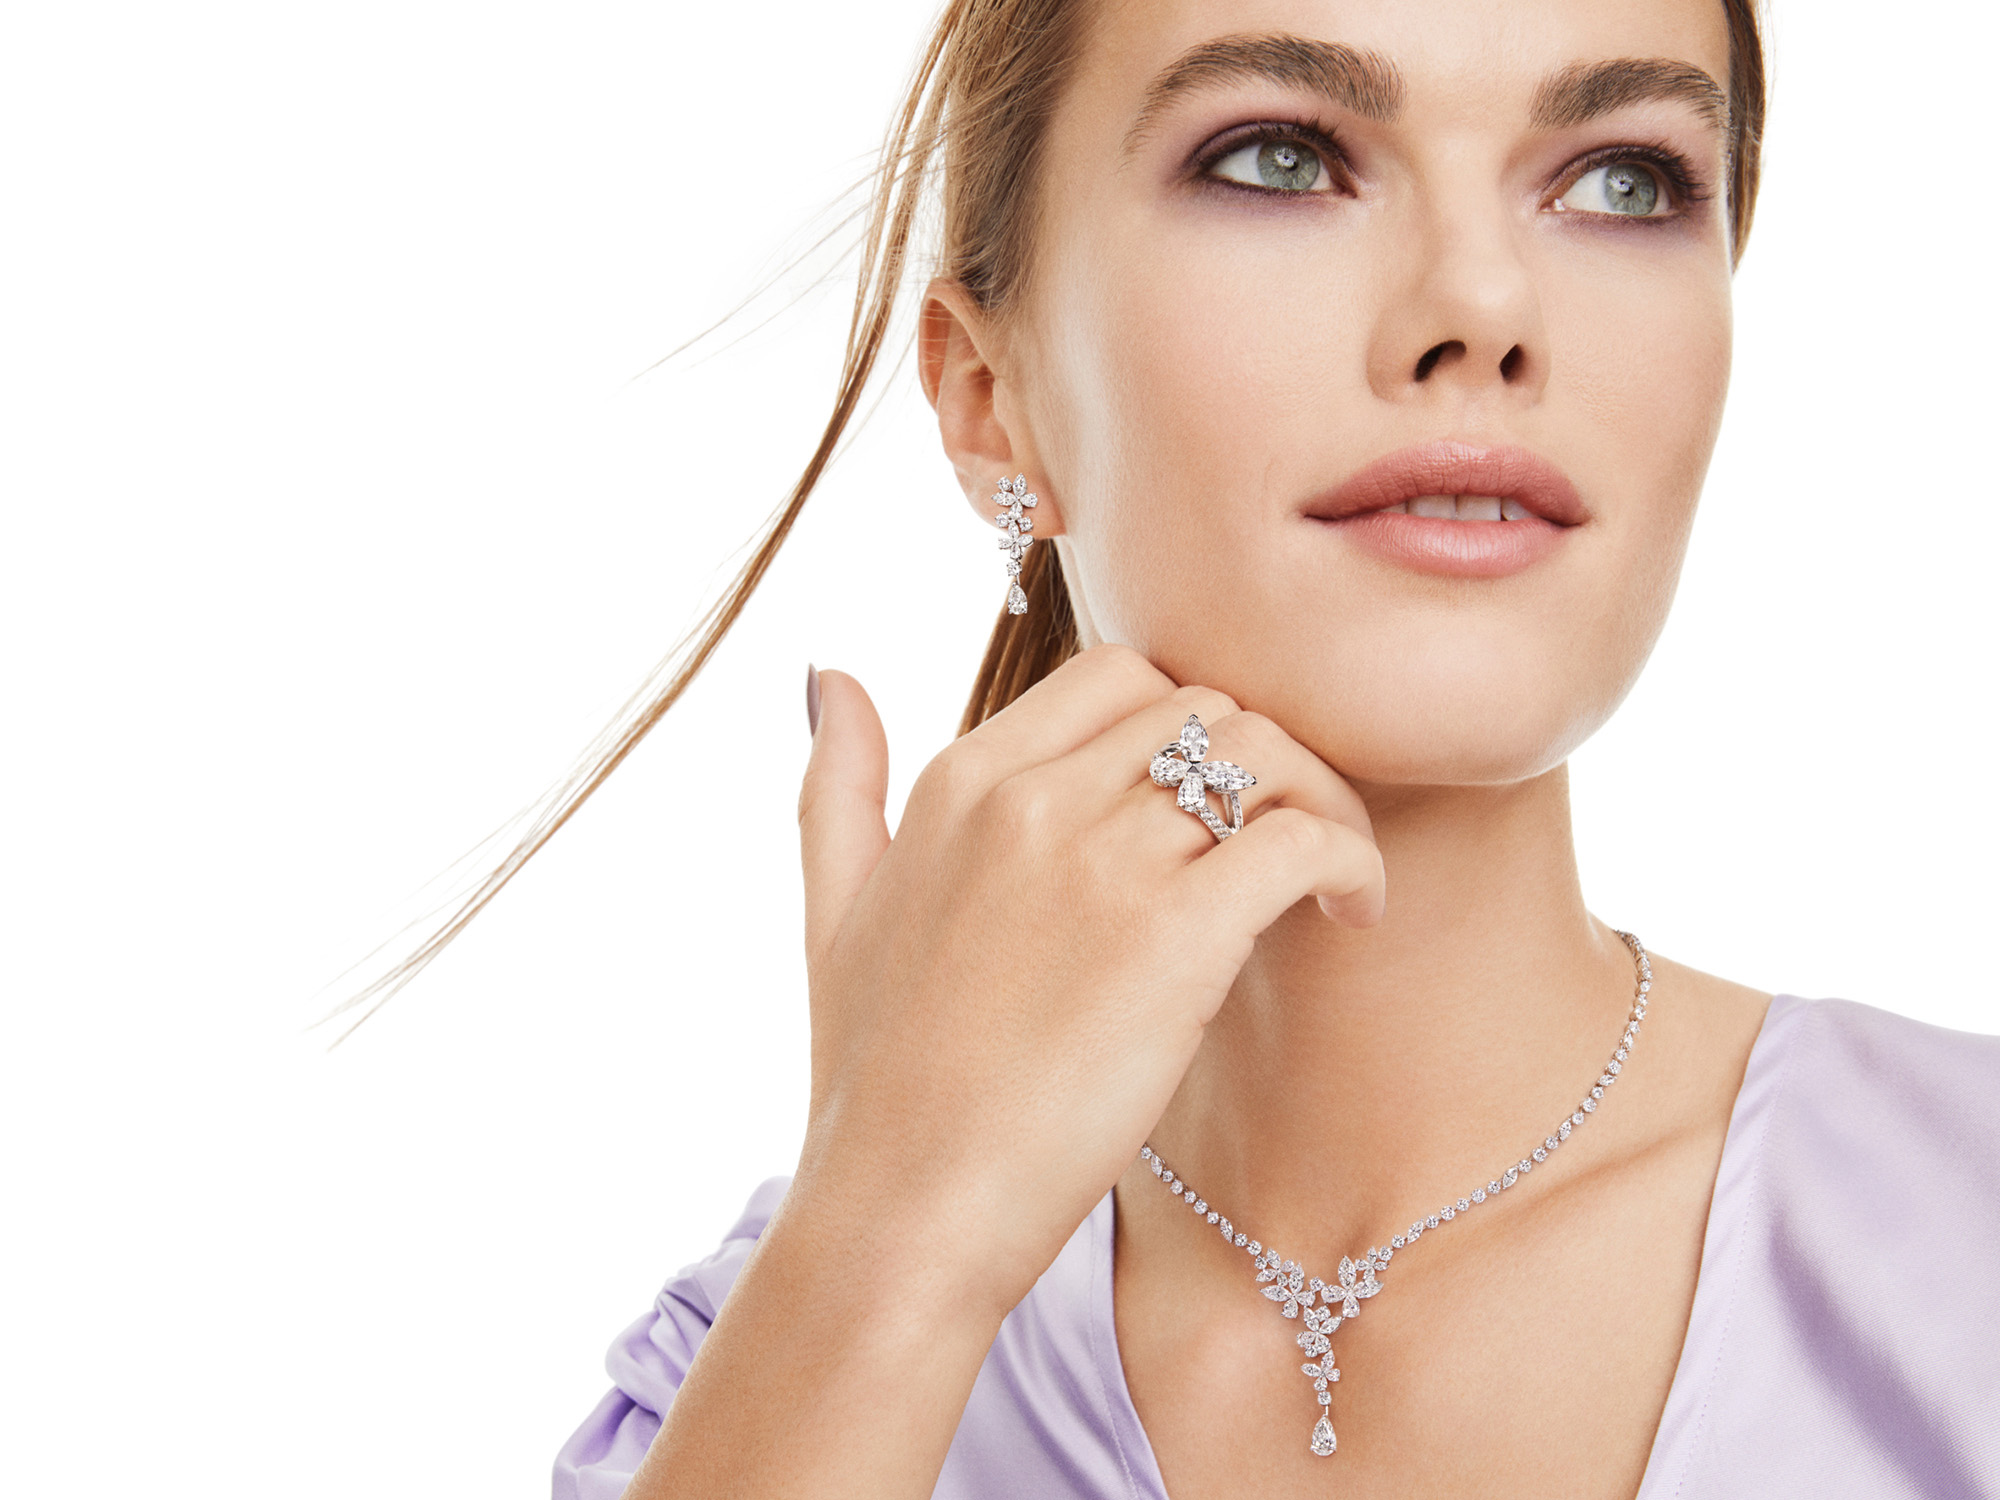 Model wears Classic Butterfly Diamond Ring, Classic Butterfly Diamond Drop Earrings and Classic Butterfly Diamond Necklace from the Graff jewellery collection